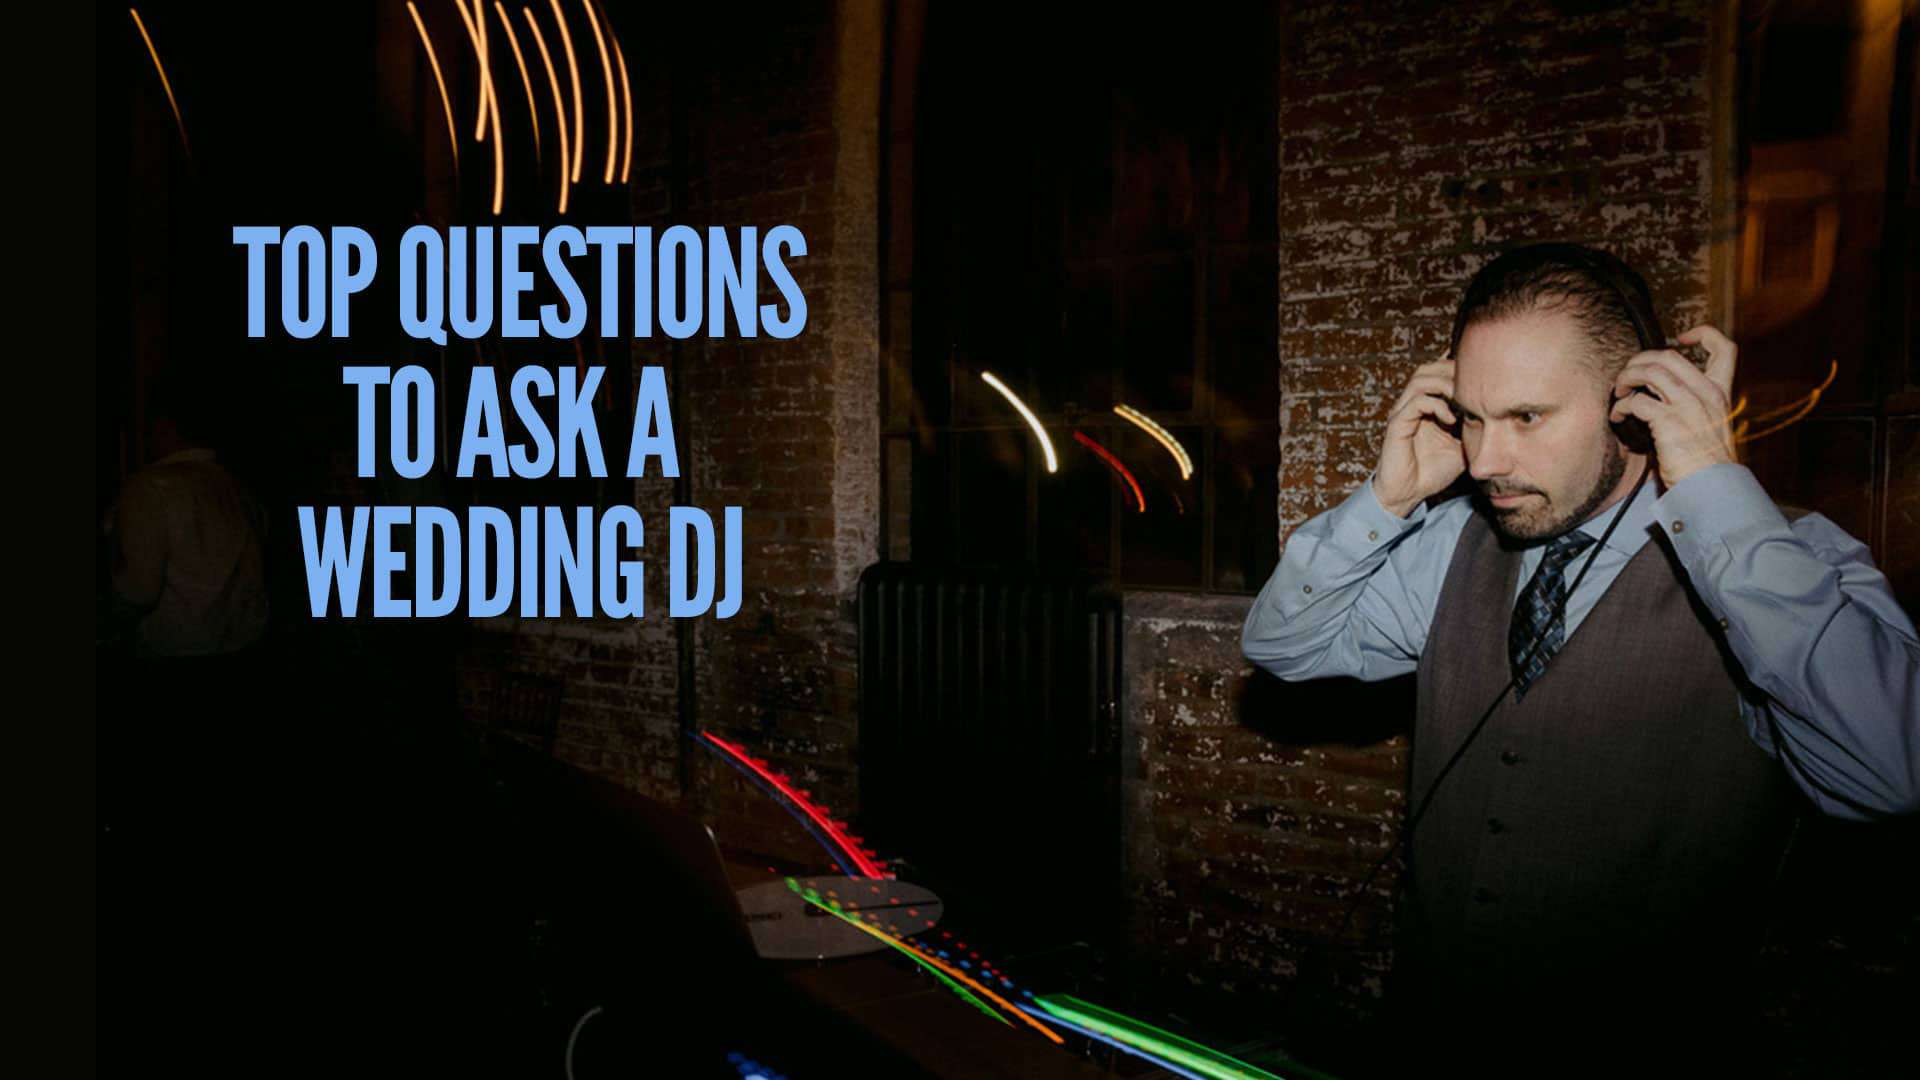 Top Questions To Ask A Wedding DJ